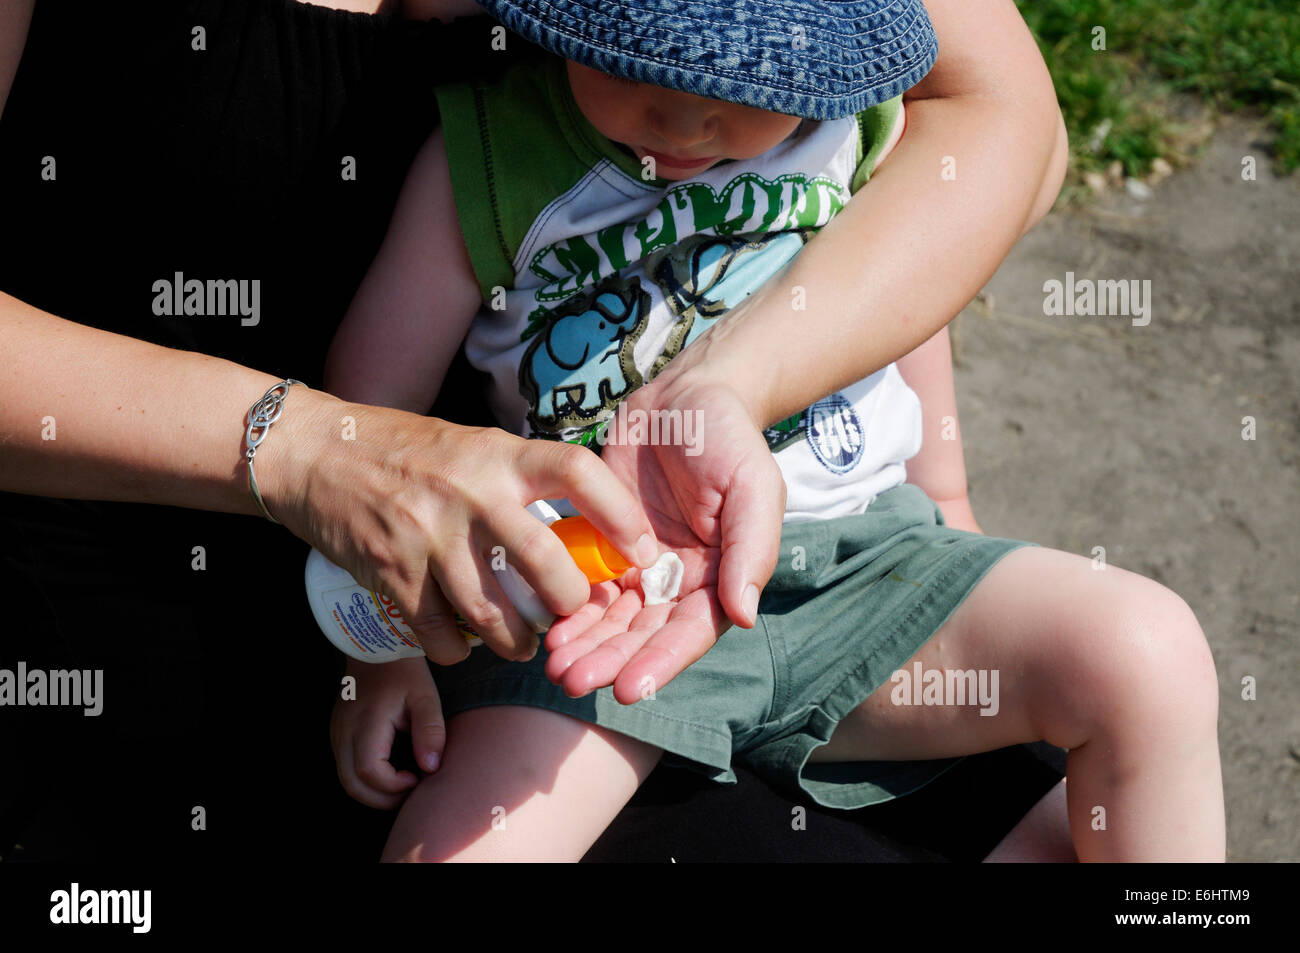 A mother spraying suncream on her two year old child - Stock Image